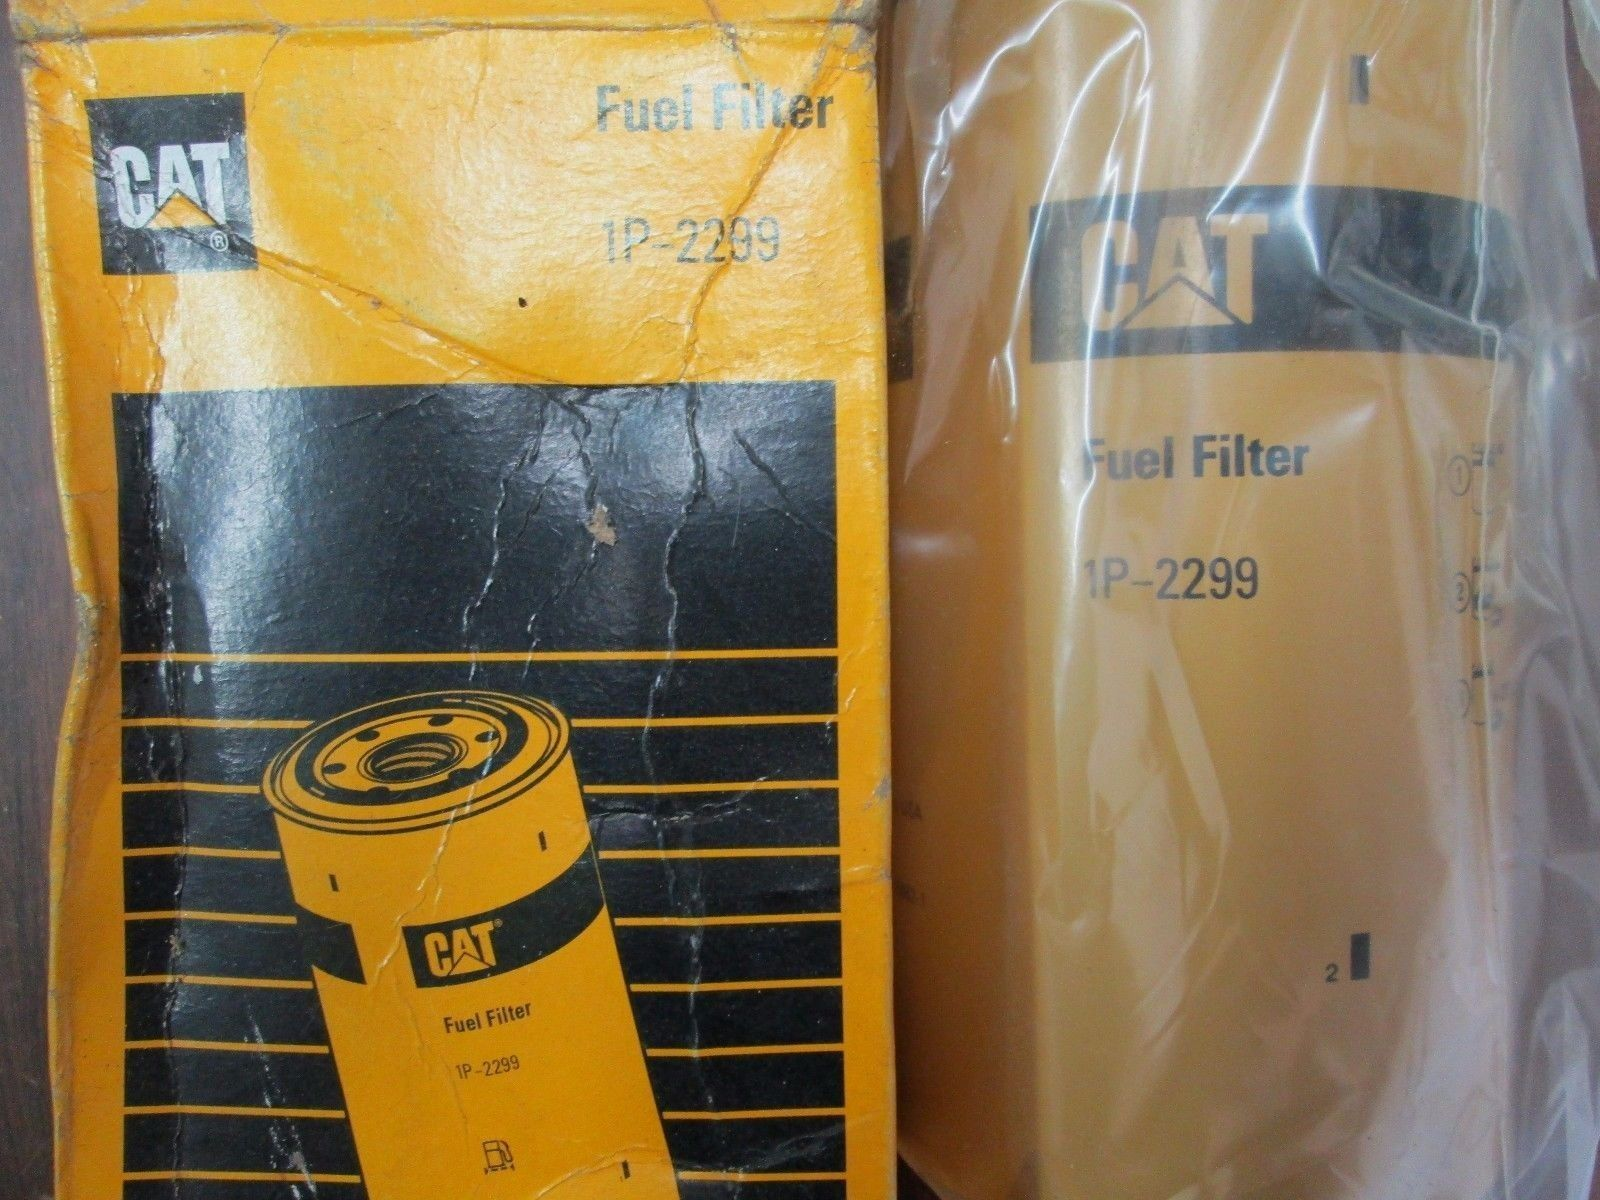 Primary image for 1P-2299, Caterpillar, Fuel Filter